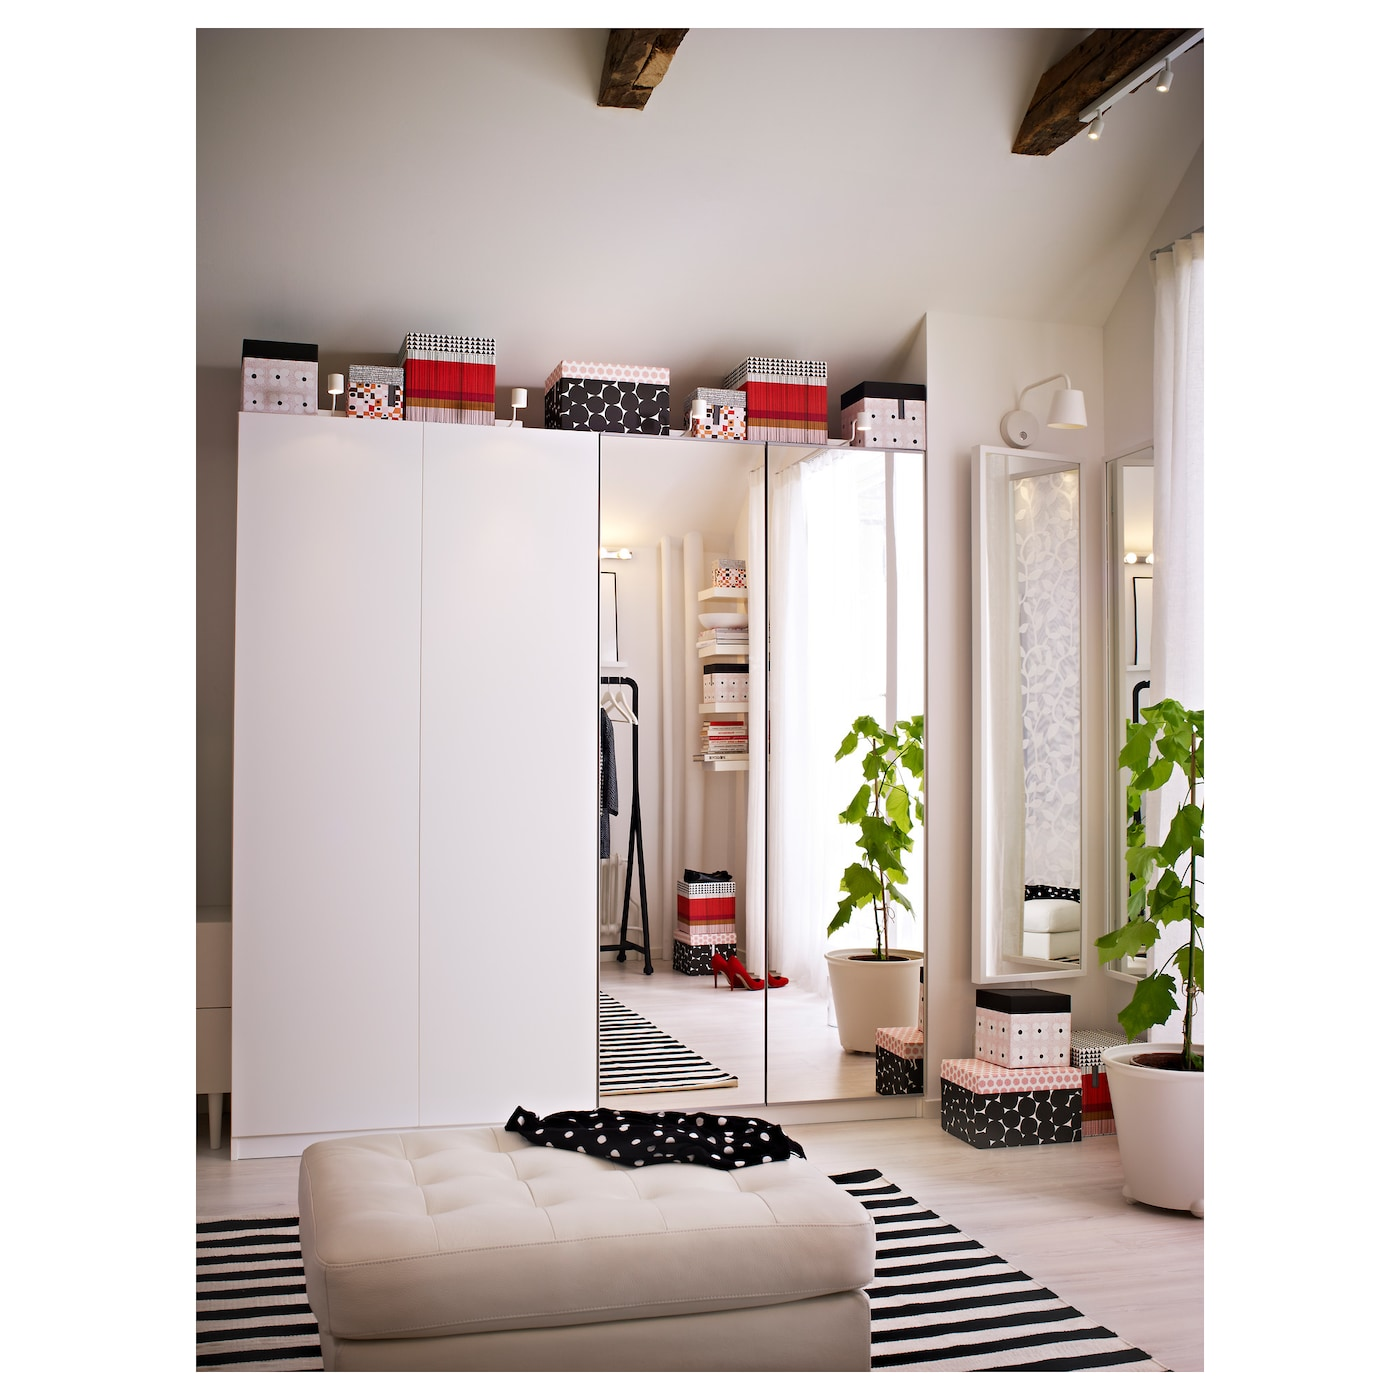 vikedal porte avec charni res miroir 50x229 cm ikea. Black Bedroom Furniture Sets. Home Design Ideas